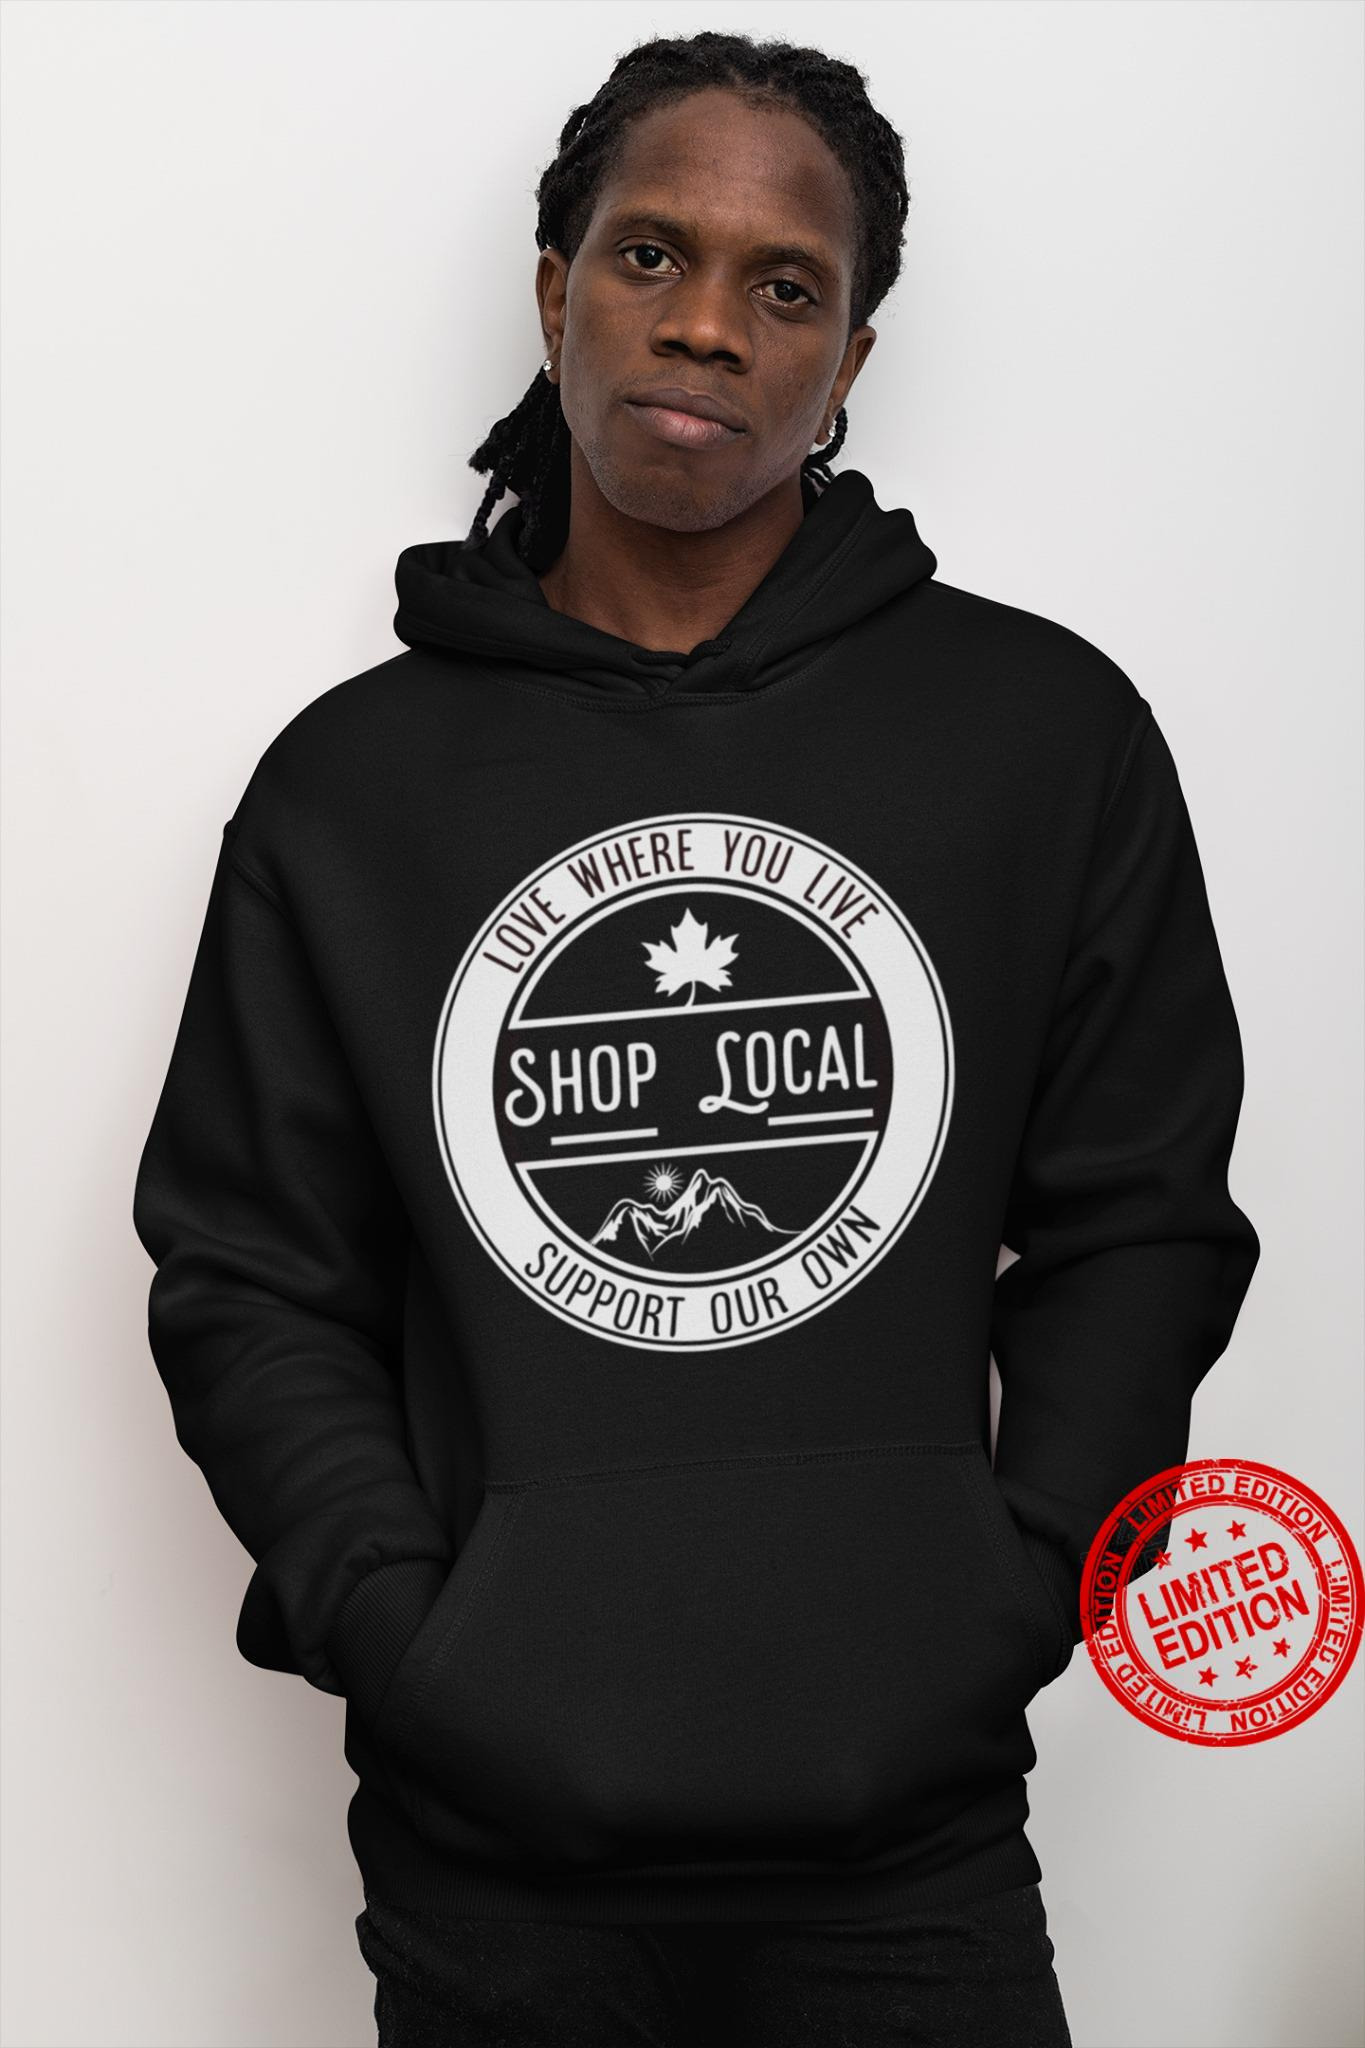 Shop Local Love Where You Live Support Our Own Shirt